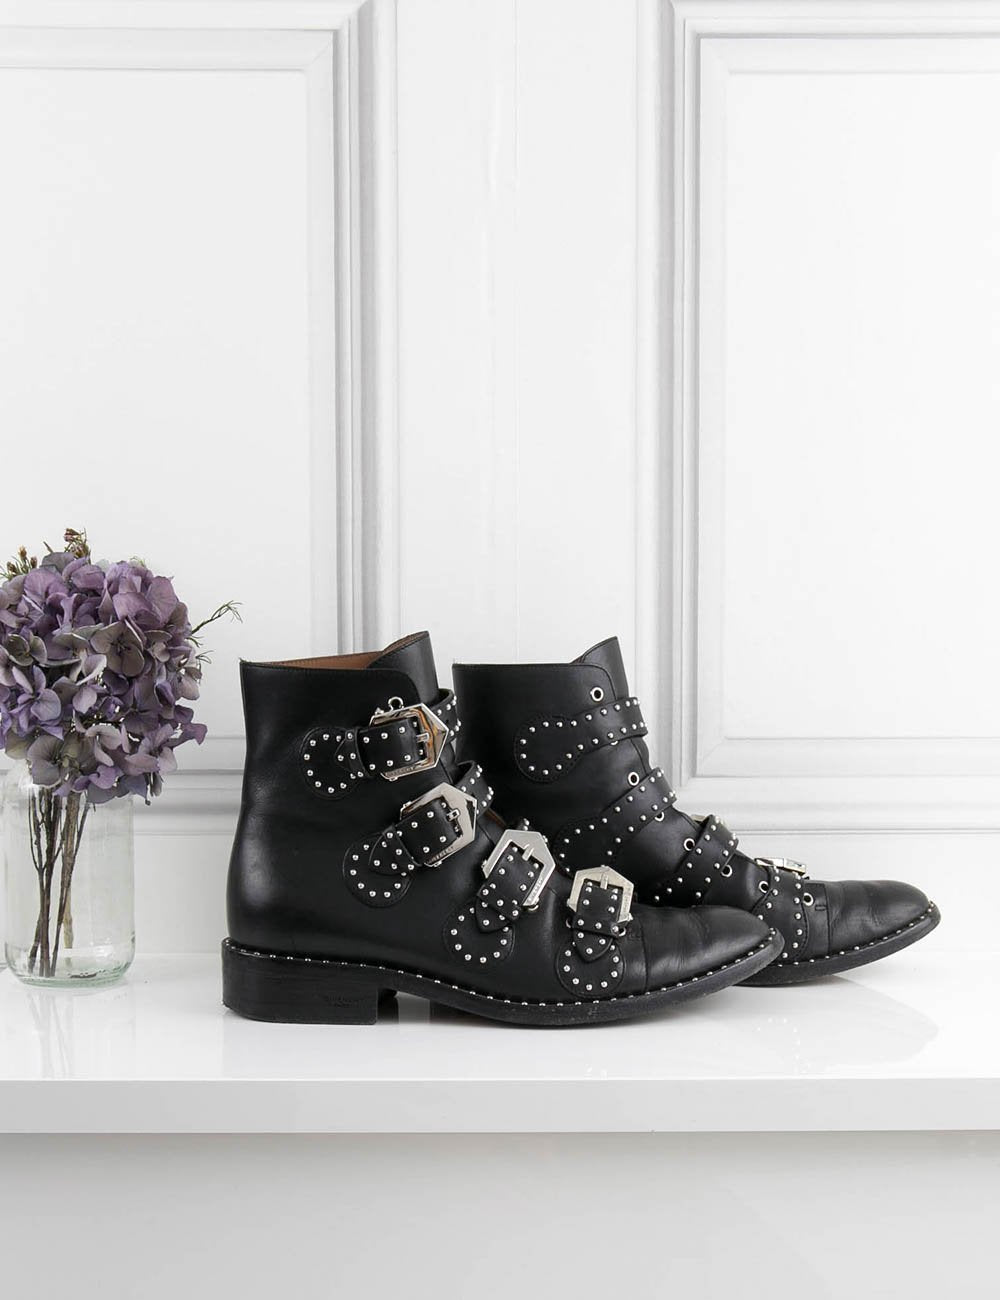 GIVENCHY SHOES Ankle Boots with studs